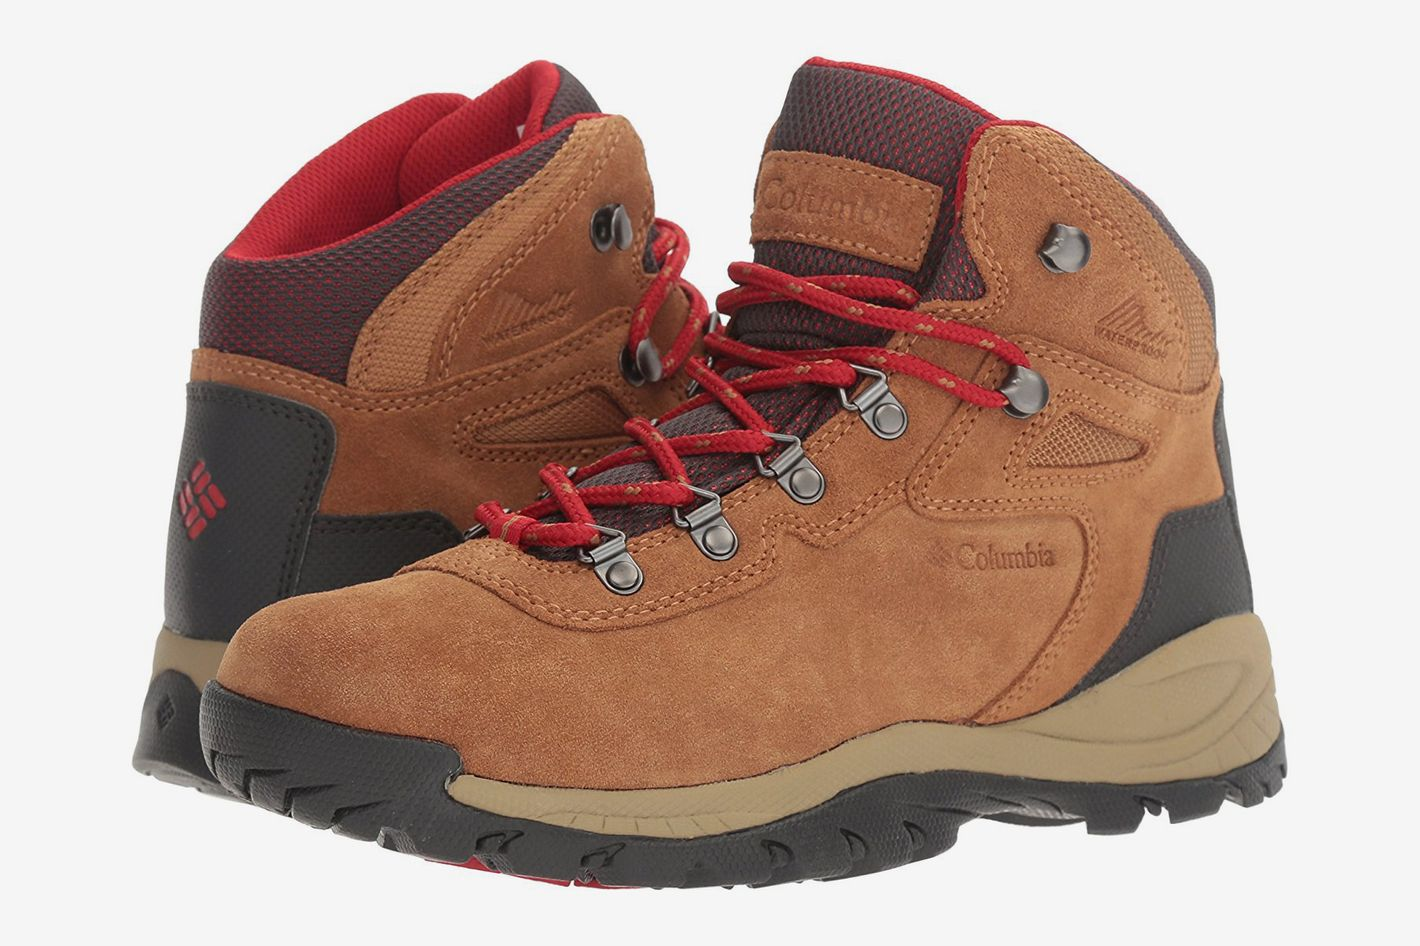 columbia waterproof women's hiking boots